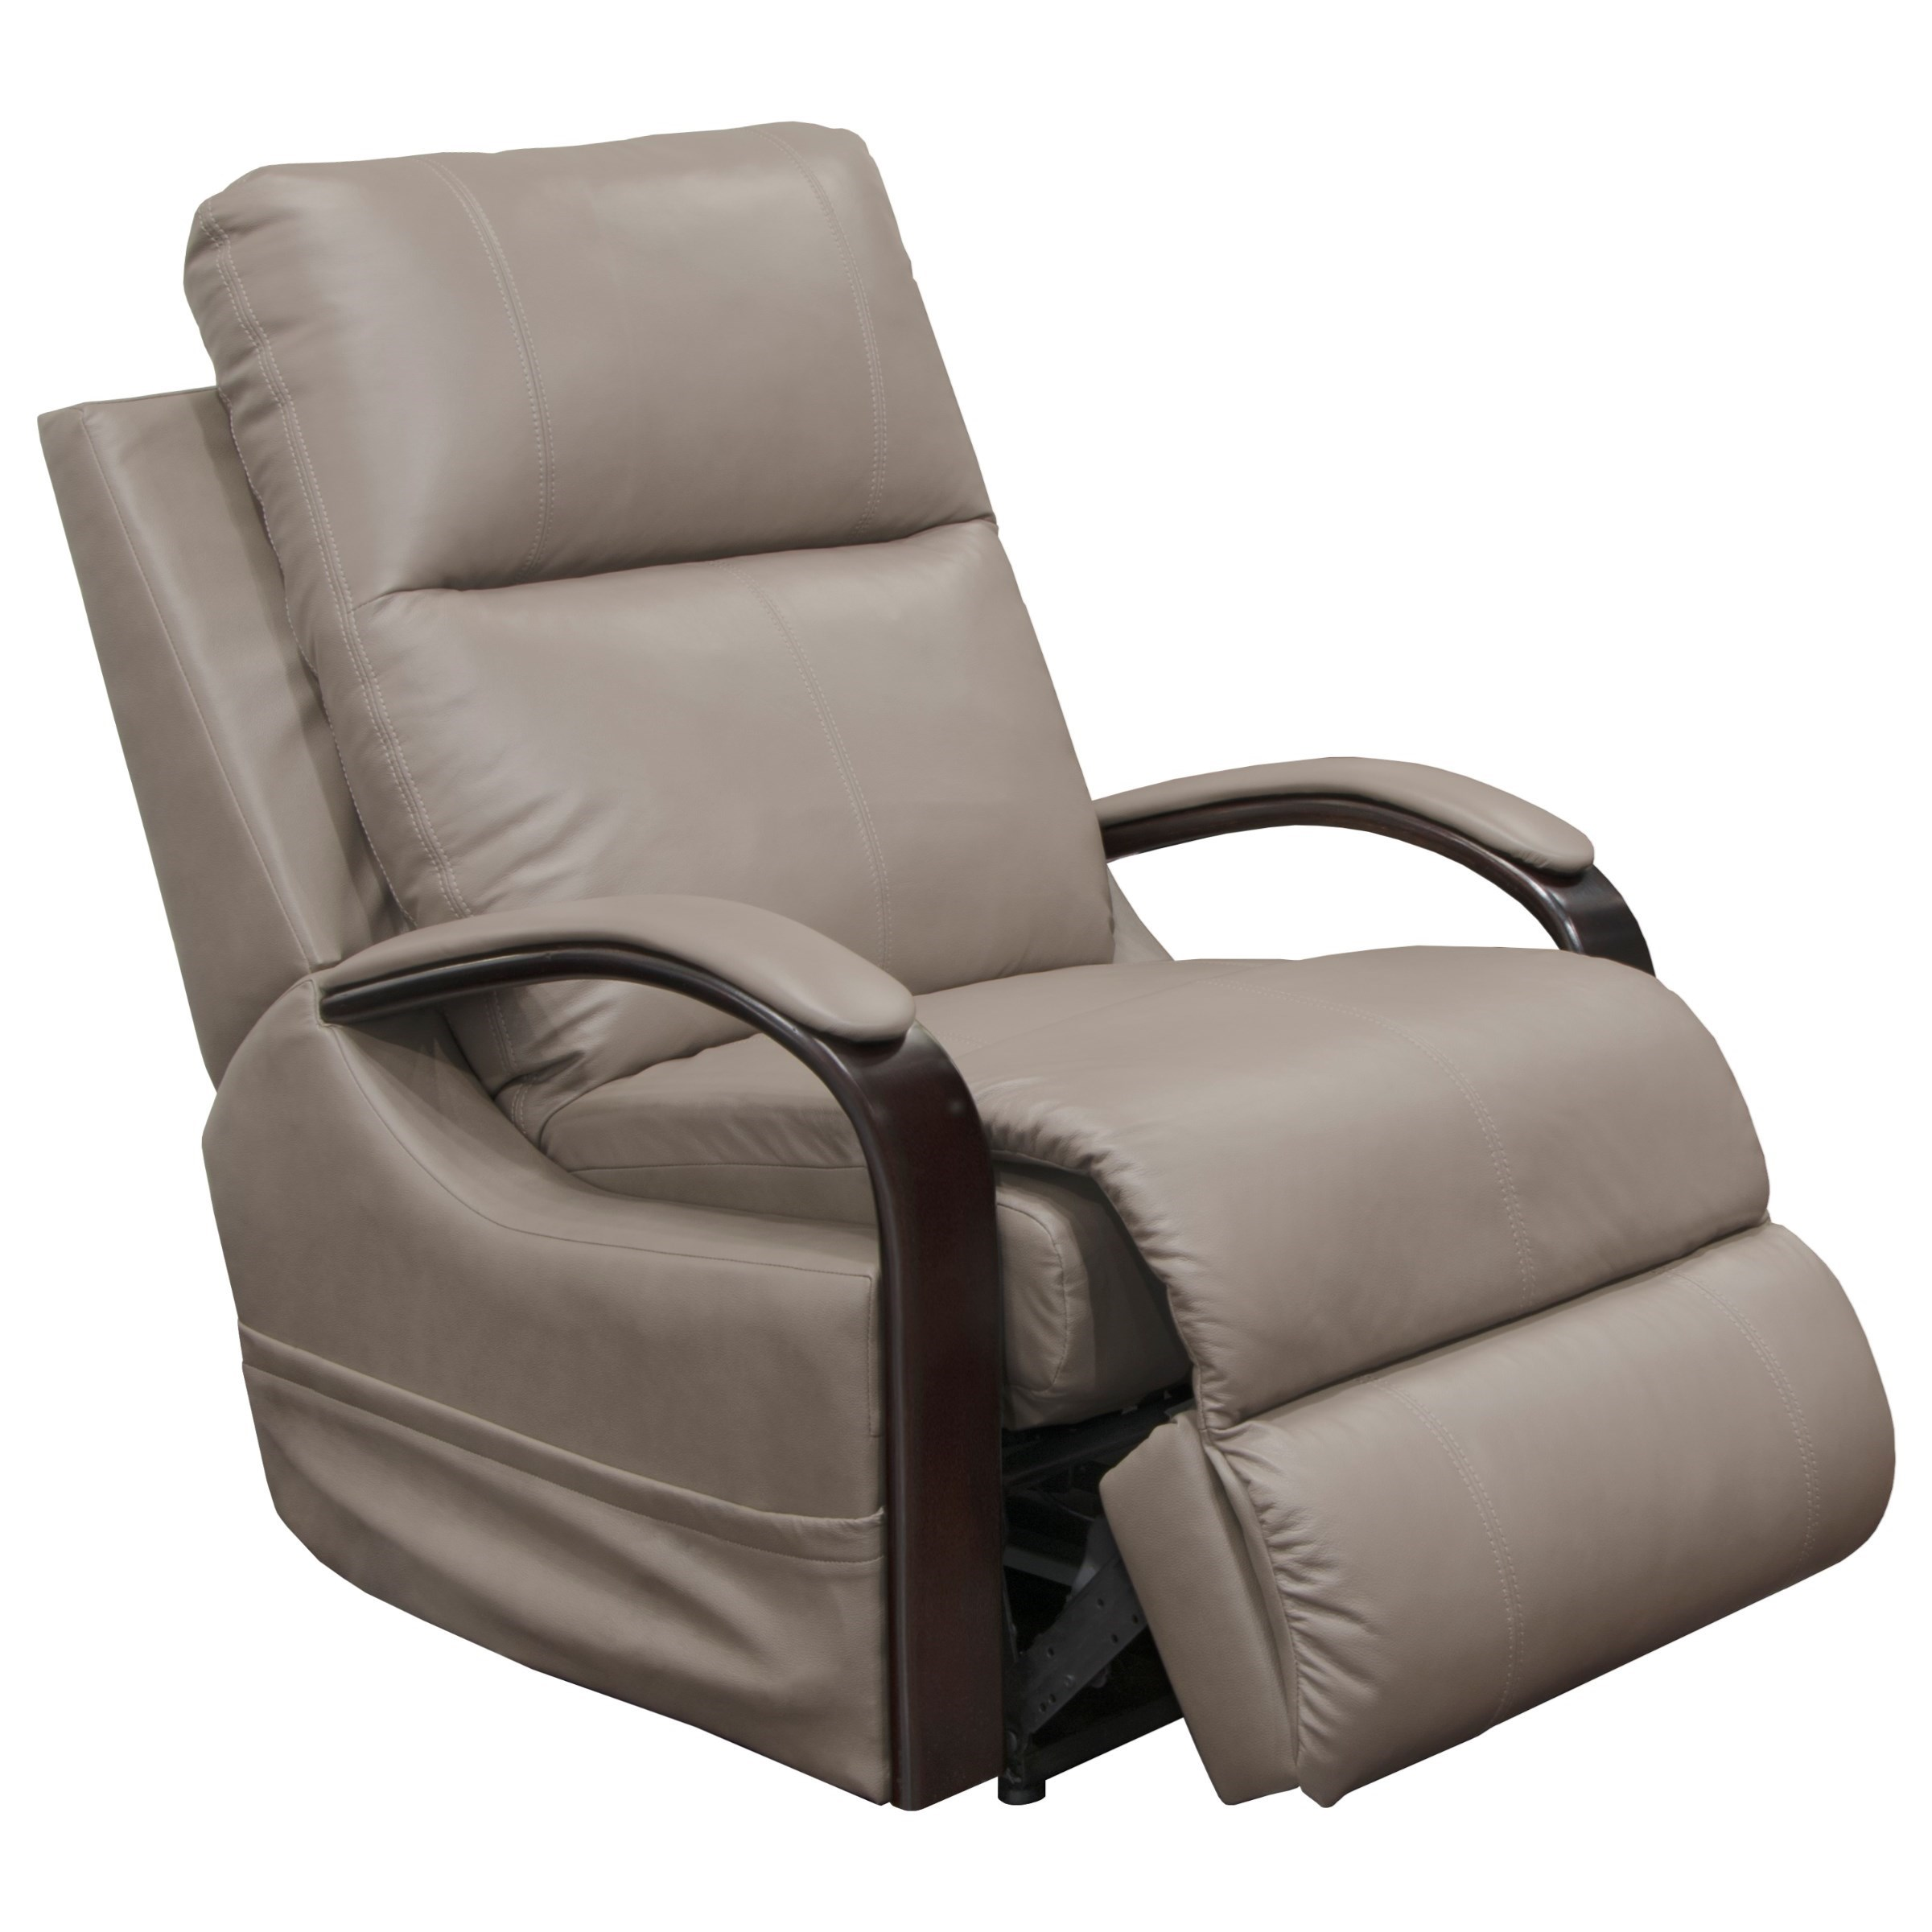 Gianni Power Lay Flat Recliner by Catnapper at Northeast Factory Direct